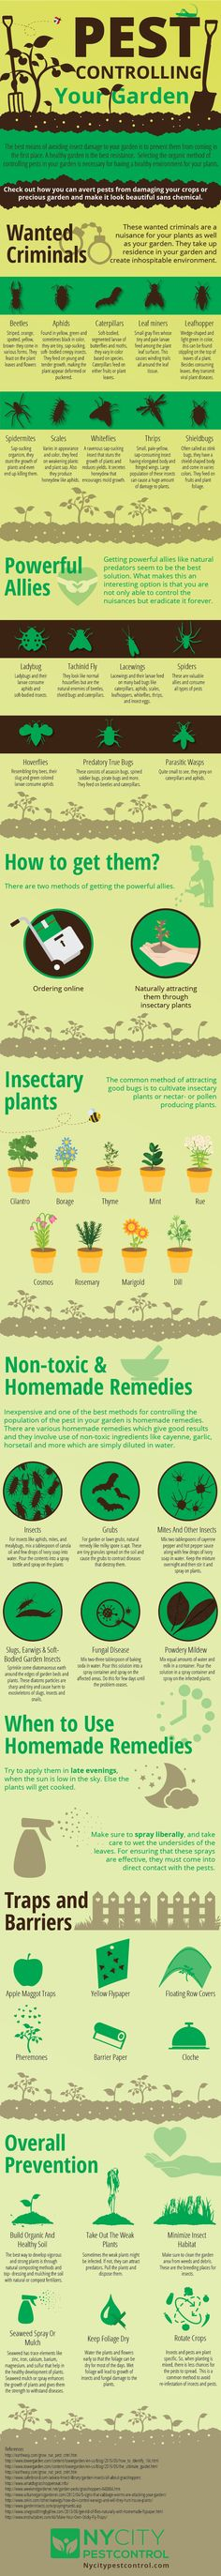 Ways to rid your home of pests!